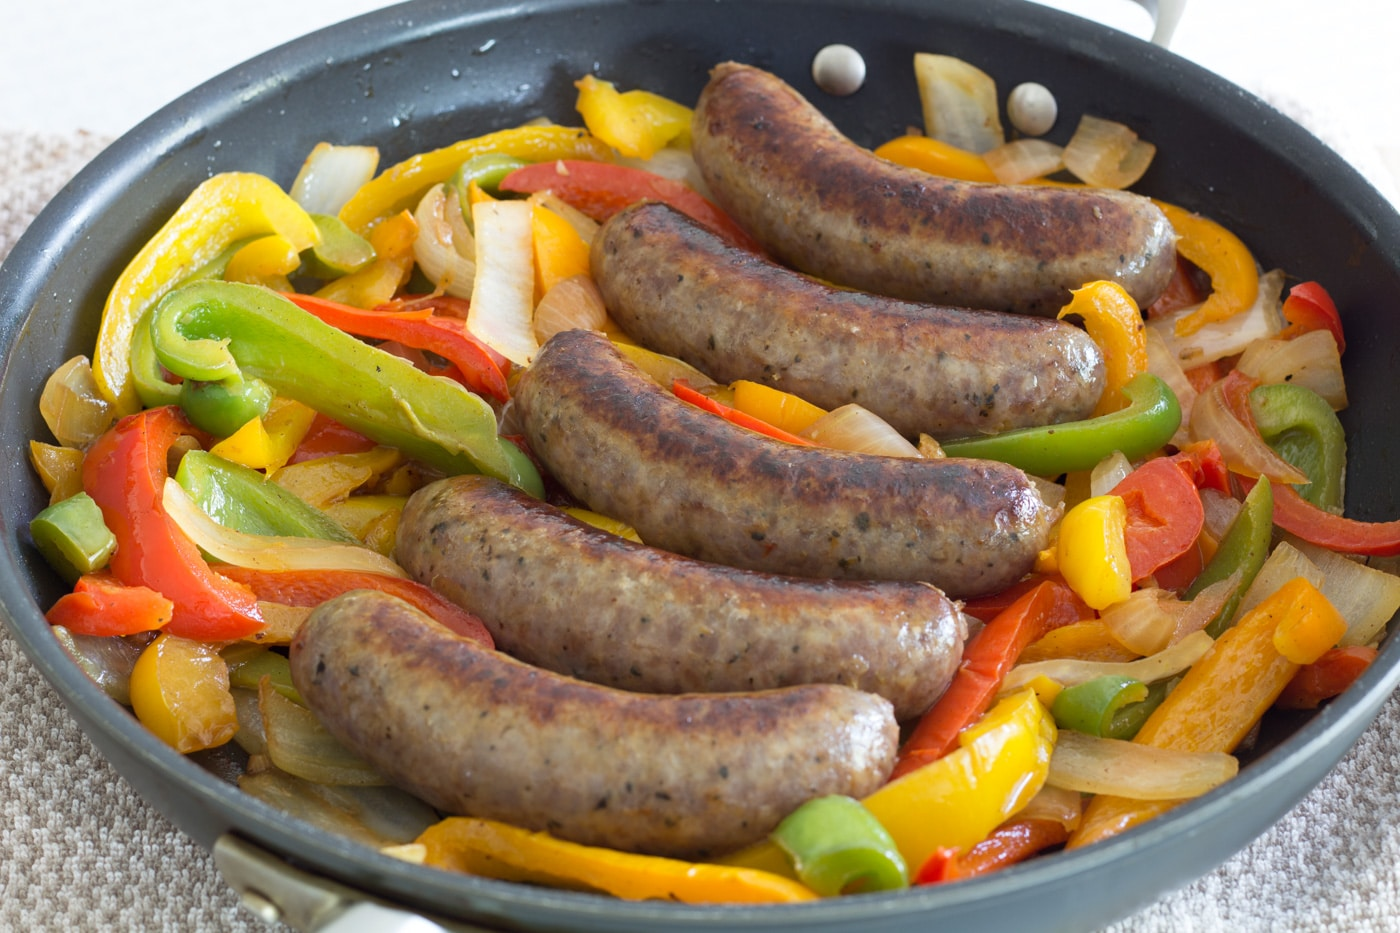 5 Italian Sausage links on top of mixed bell peppers and onions in a skillet